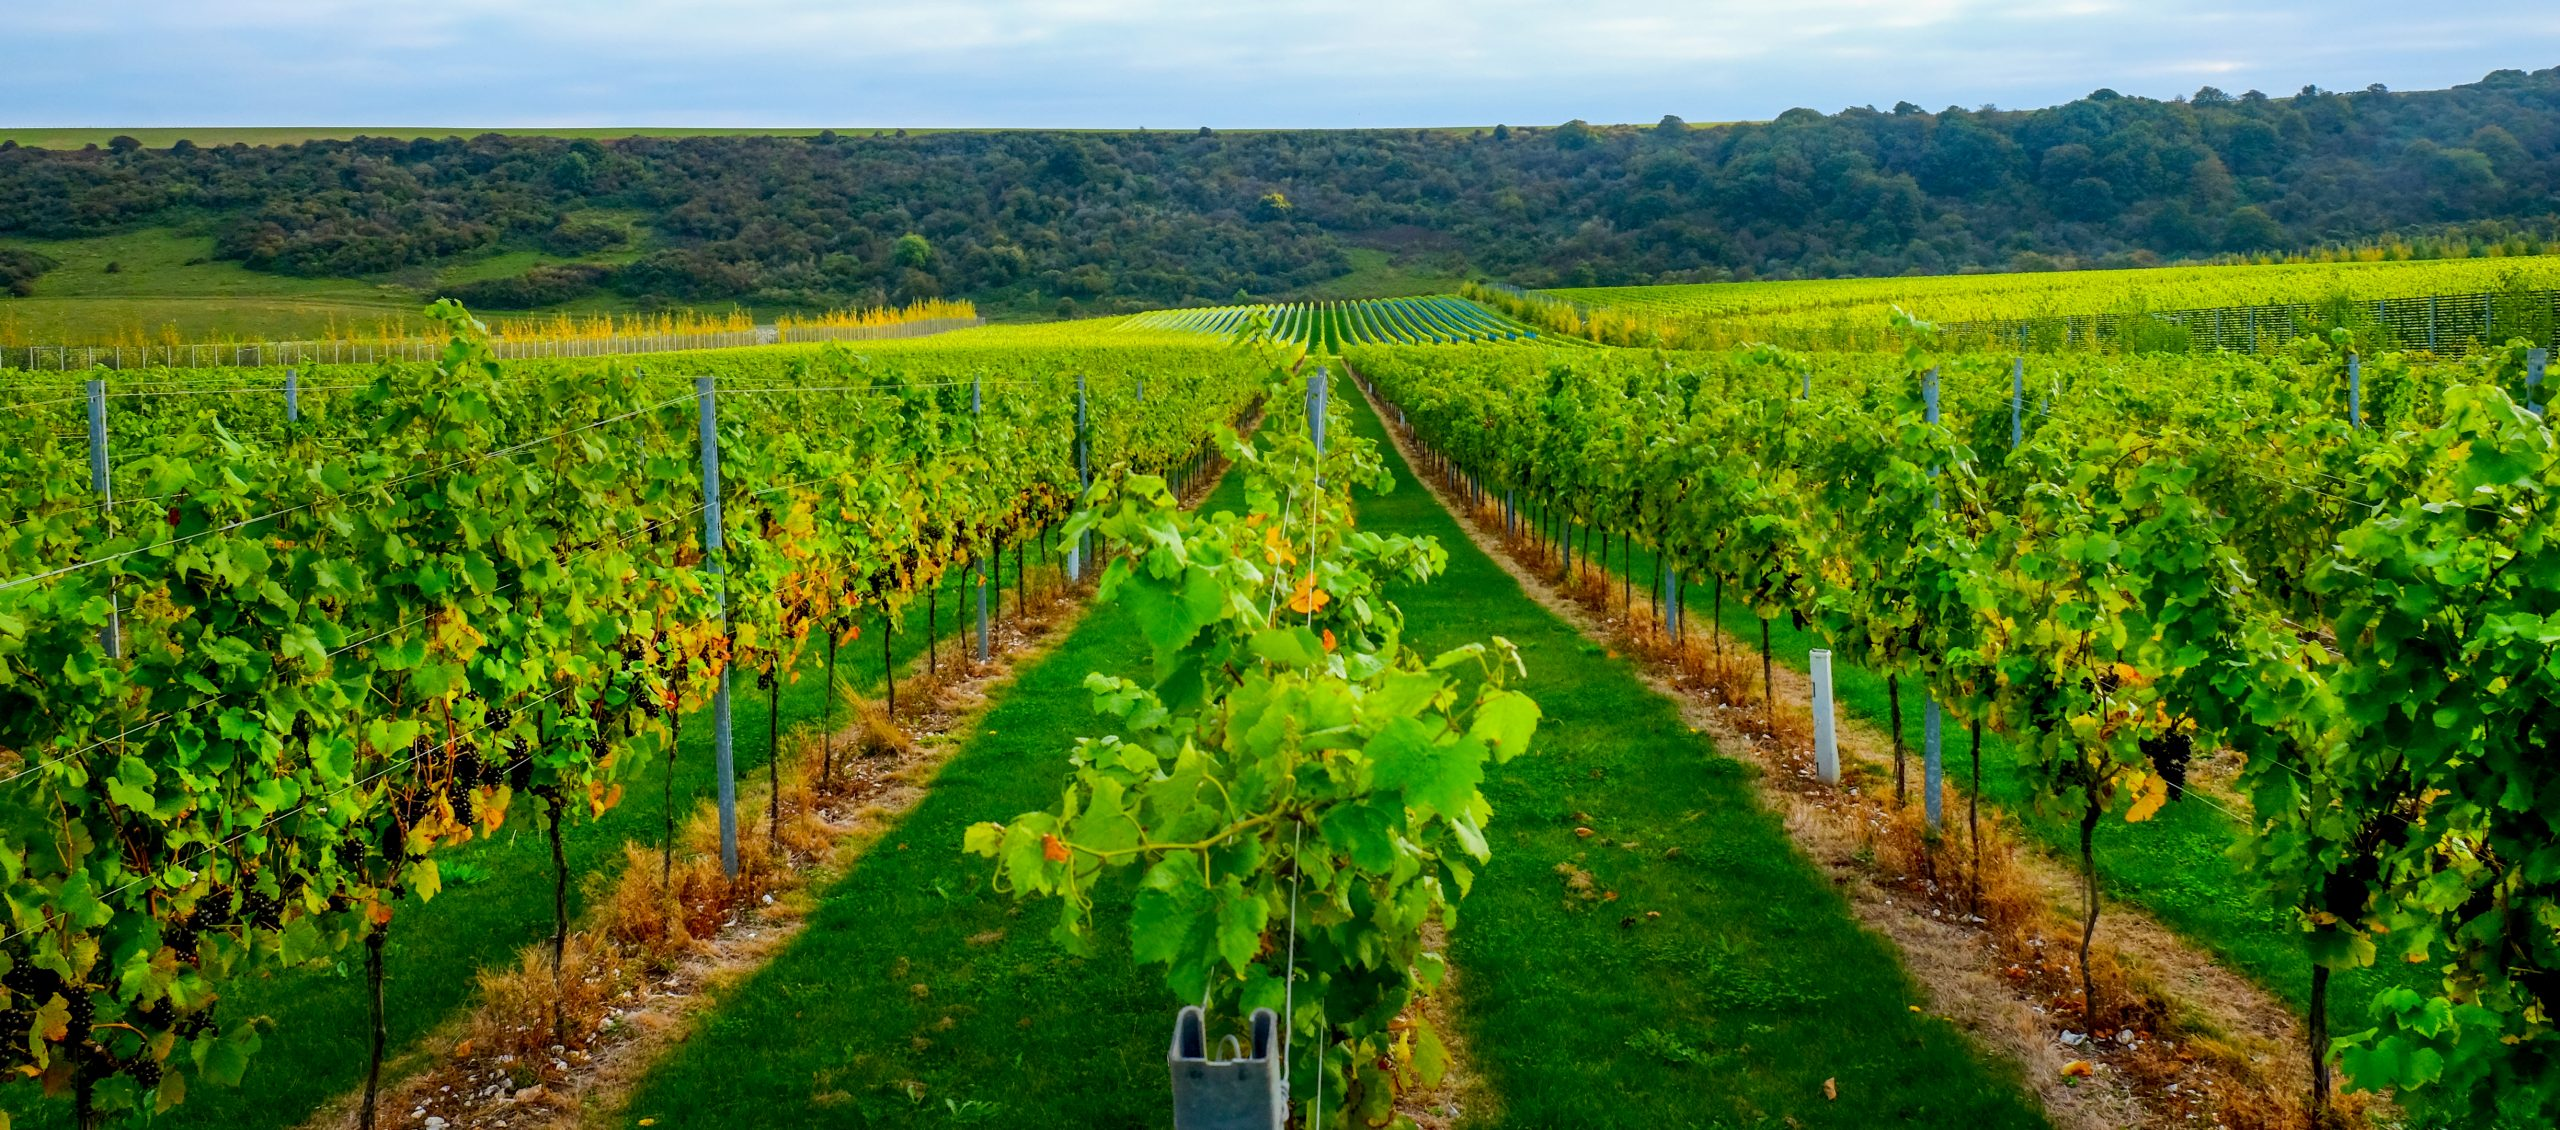 21 vineyards in the South East to visit in 2021